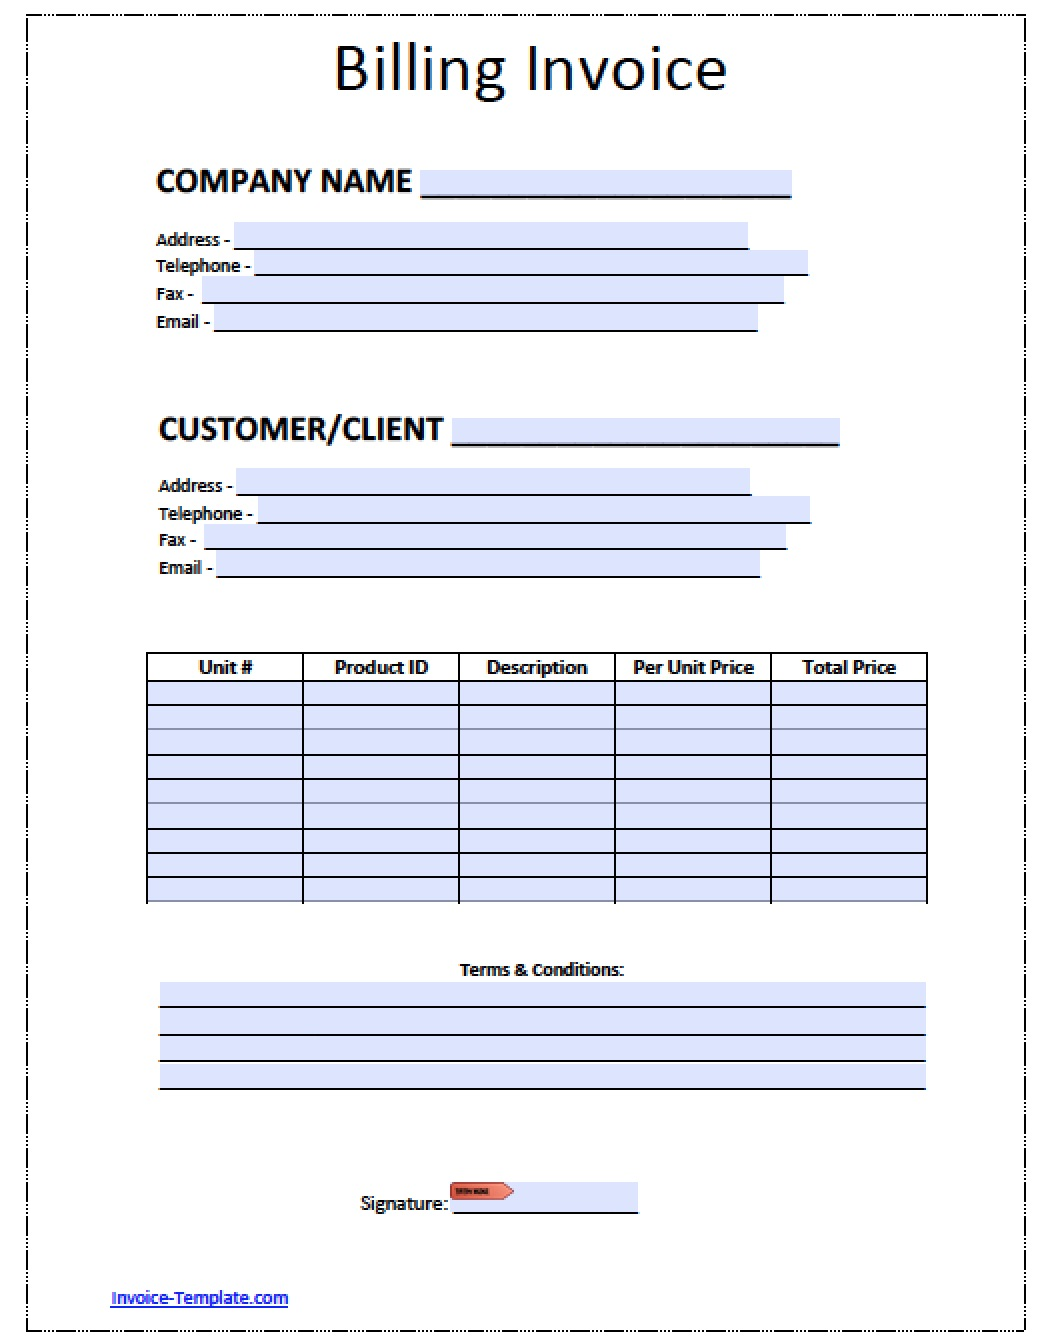 Free Blank Invoice Templates In PDF Word Excel - Free printable invoice templates word